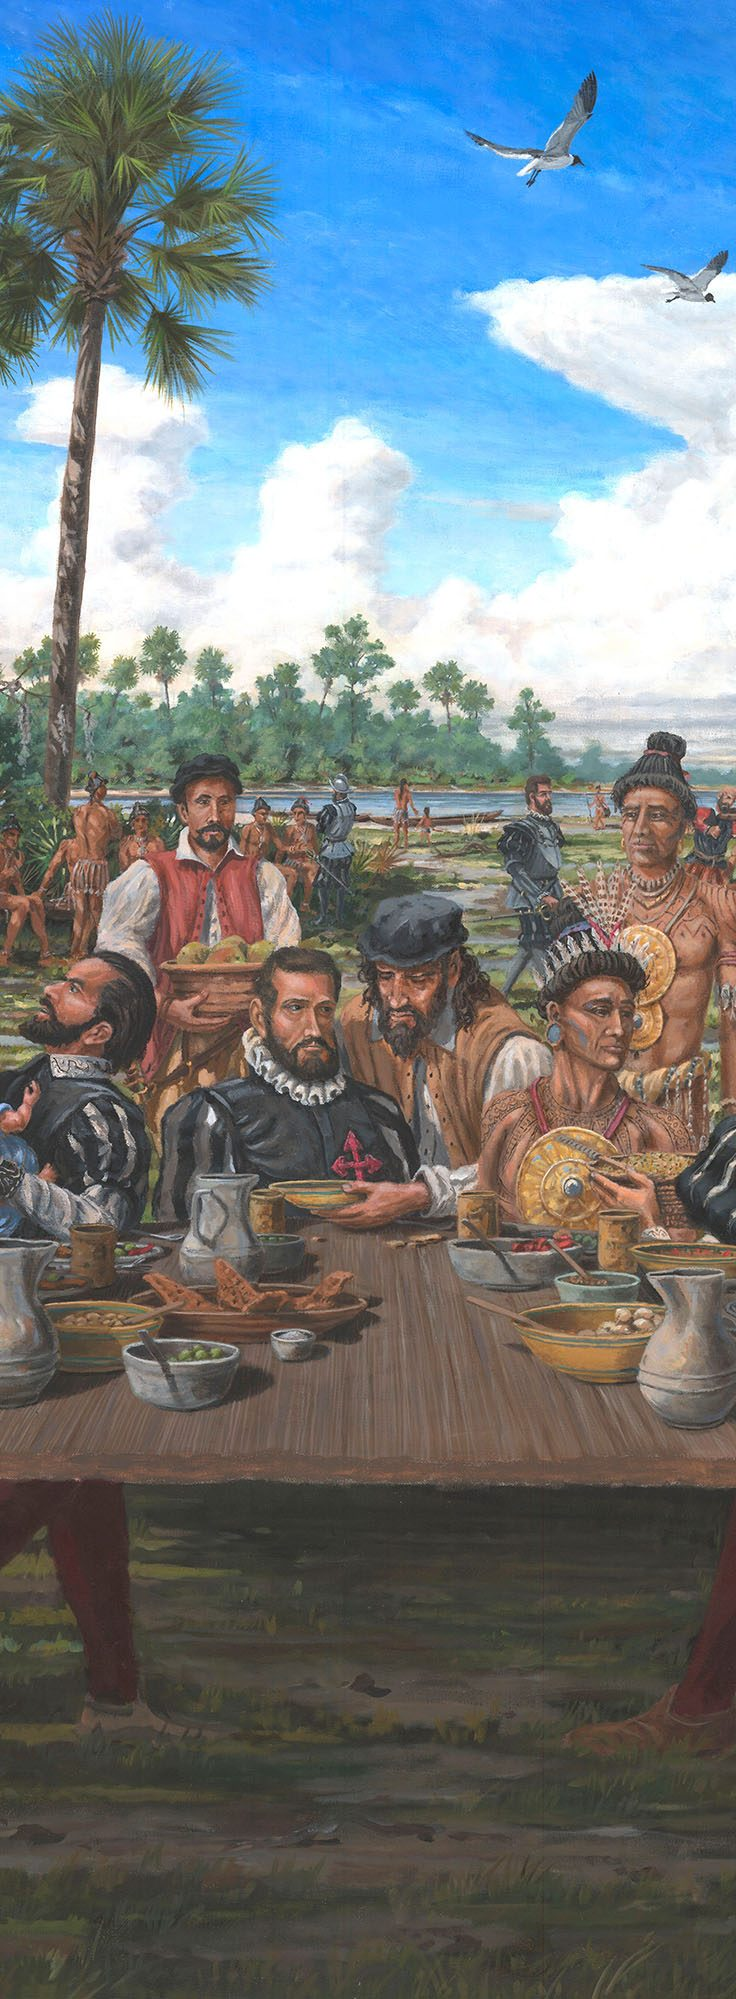 painting of Spaniards and Native Americans sharing food and drink